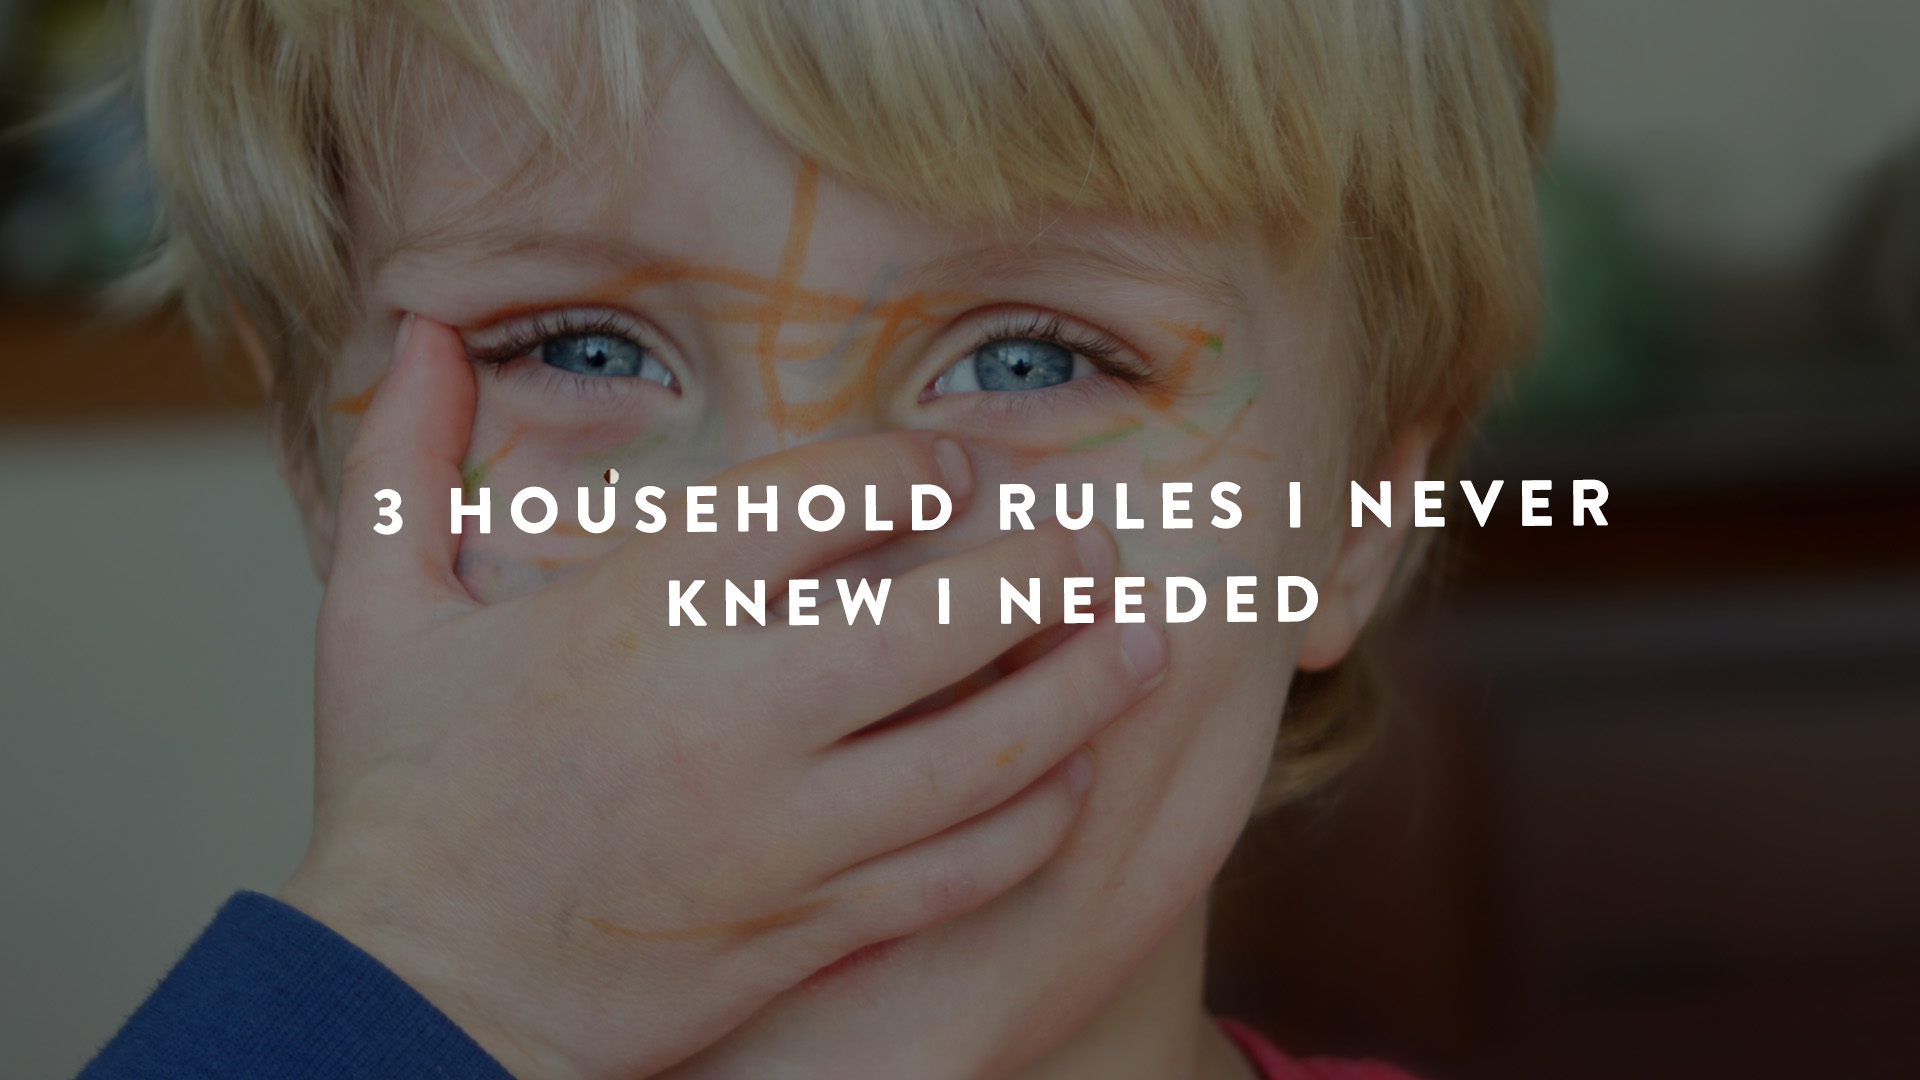 3 household rules I never knew I needed